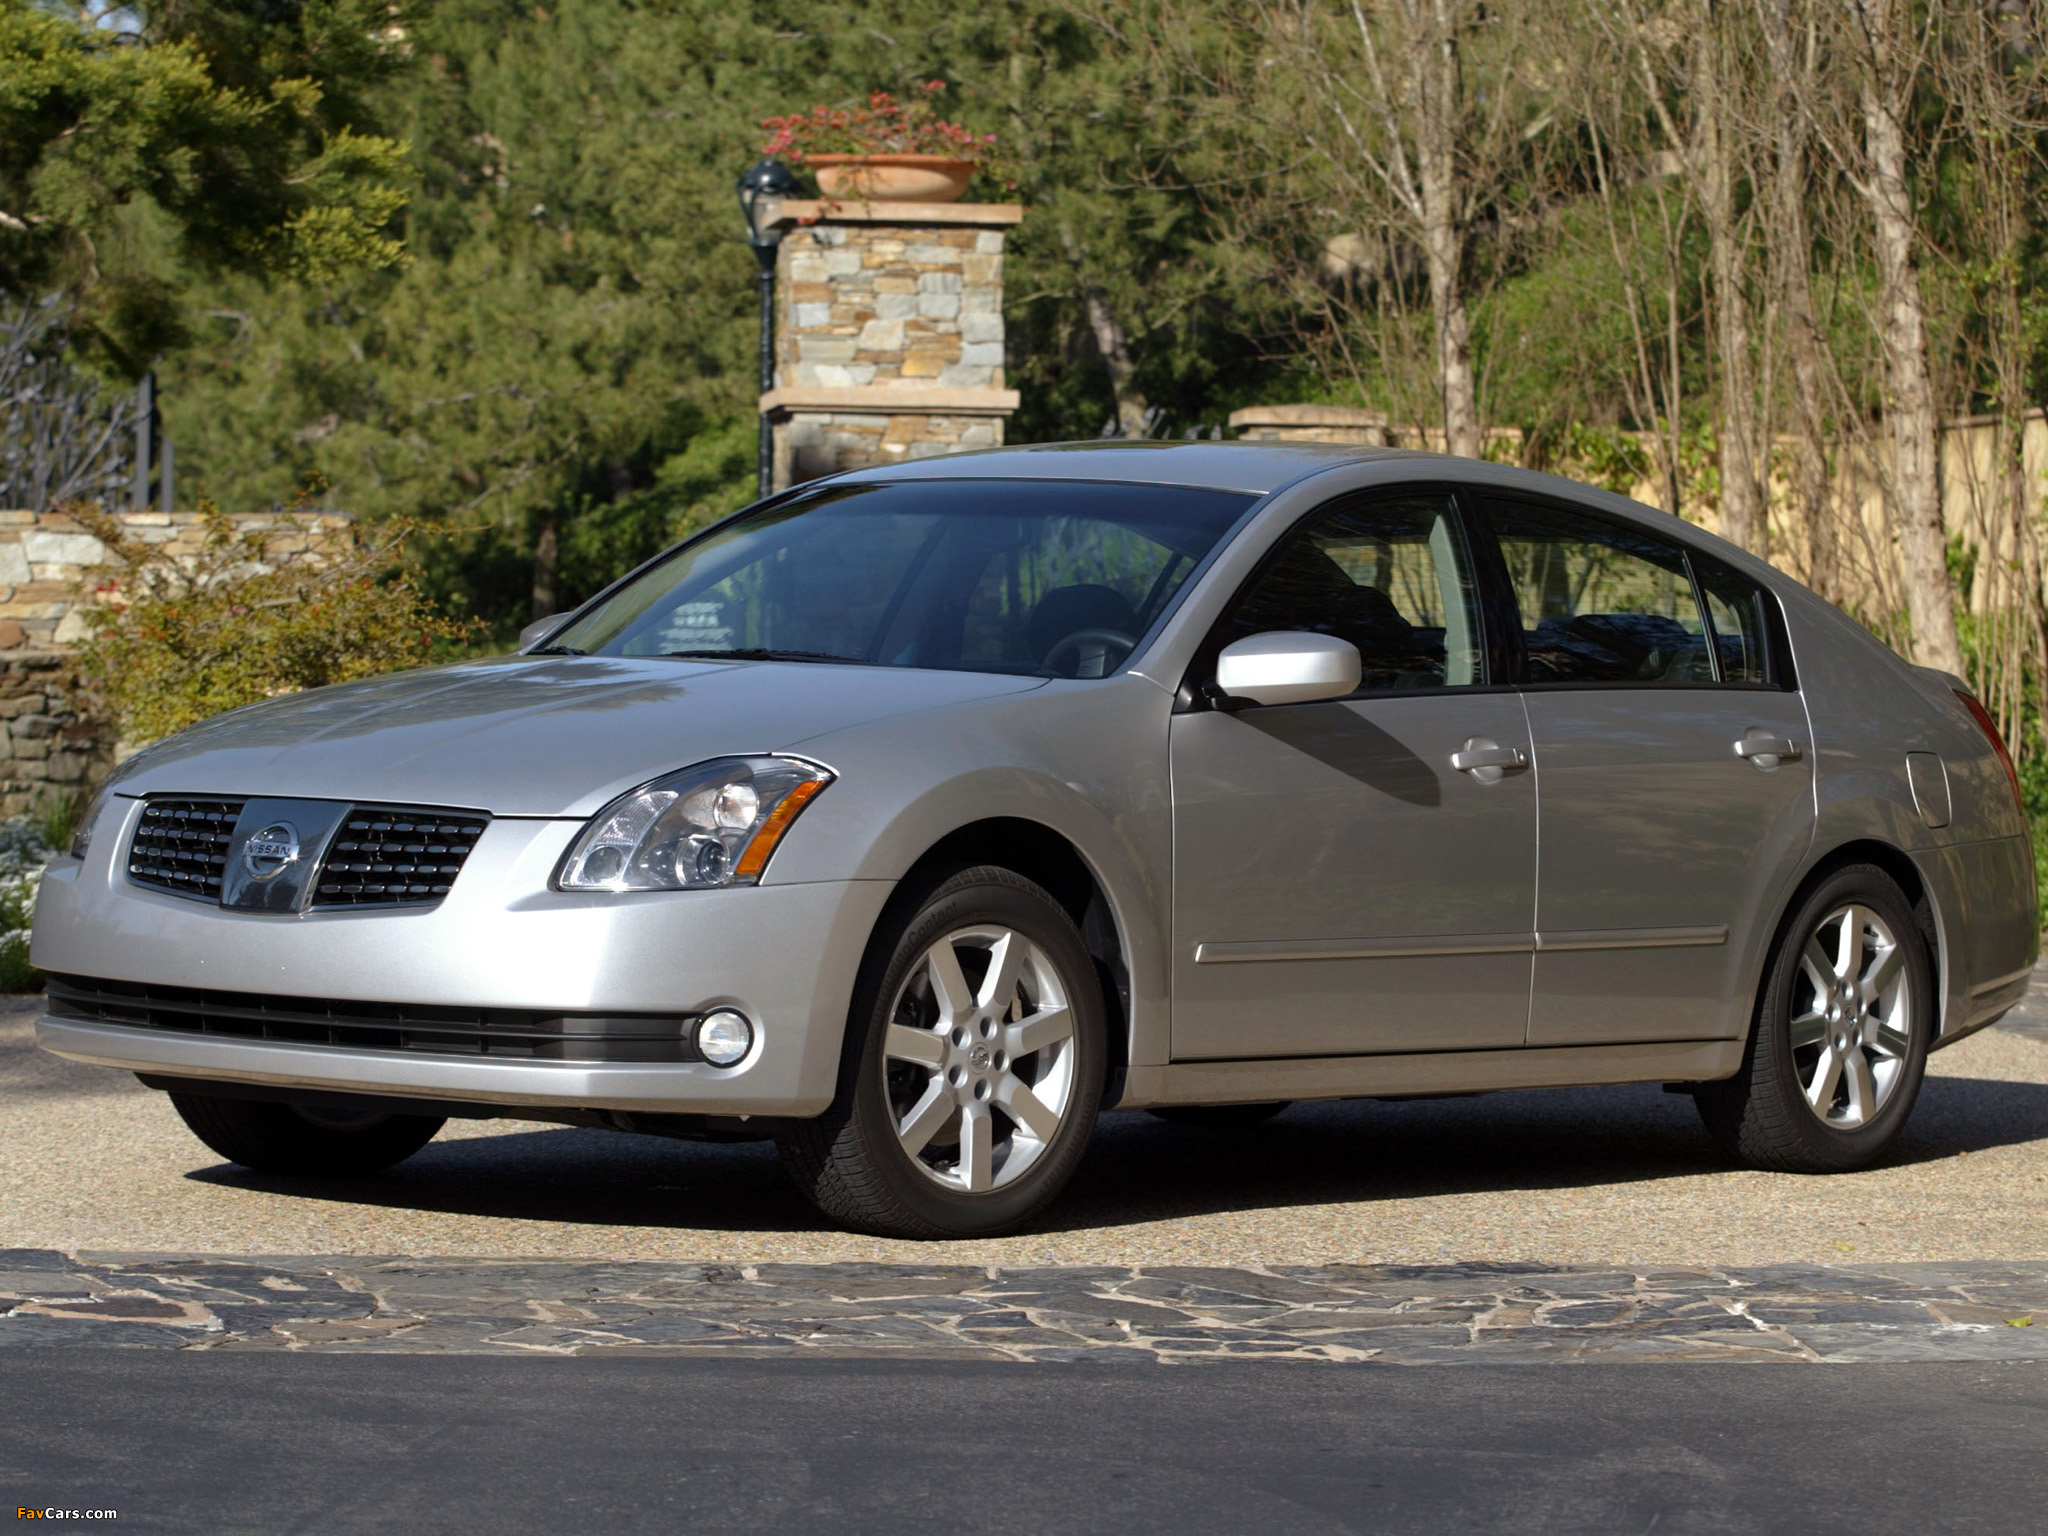 Nissan Maxima A35 2004 06 Pictures 2048x1536